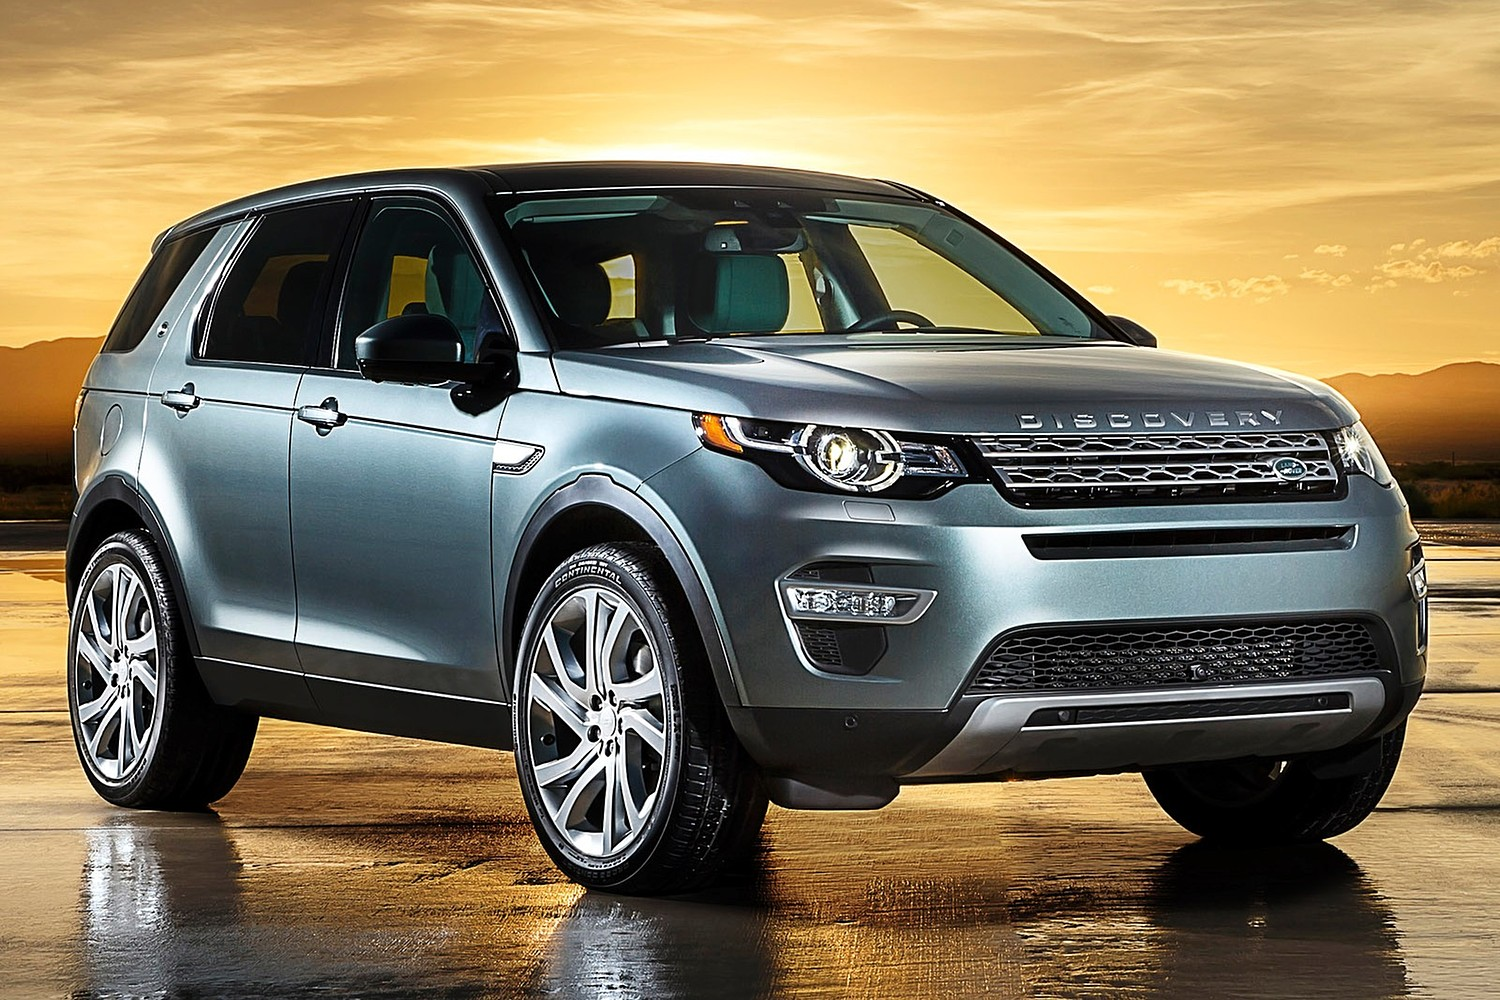 2016 Land Rover Discovery Sport HSE LUX 4dr SUV Exterior Shown